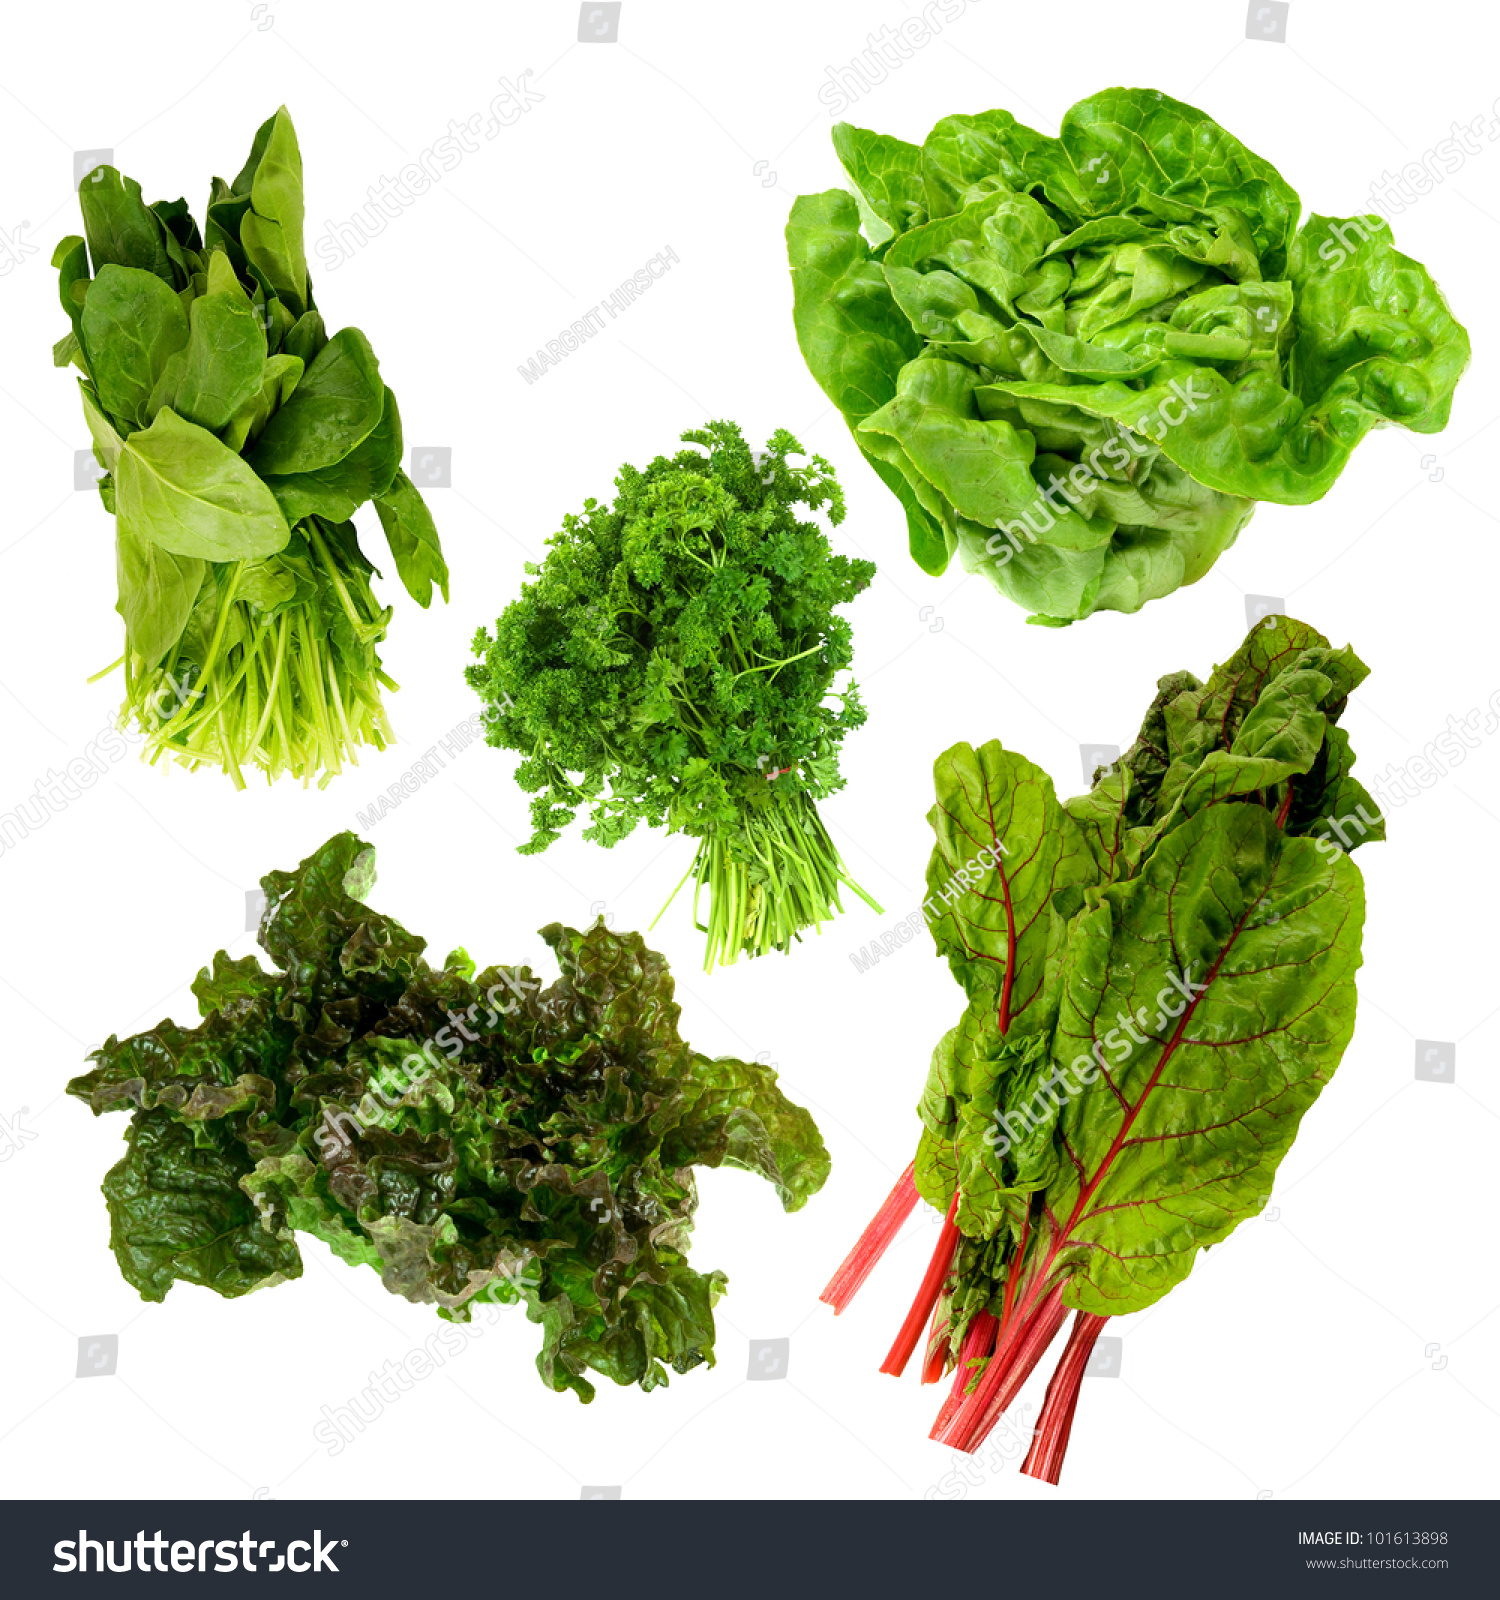 Healthy Dark Green Leafy Vegetables,Kale,Spinach,Parsley,Boston Lettuce,Red Tipped Lettuce On A White Background Stock Photo 101613898 : Shutterstock